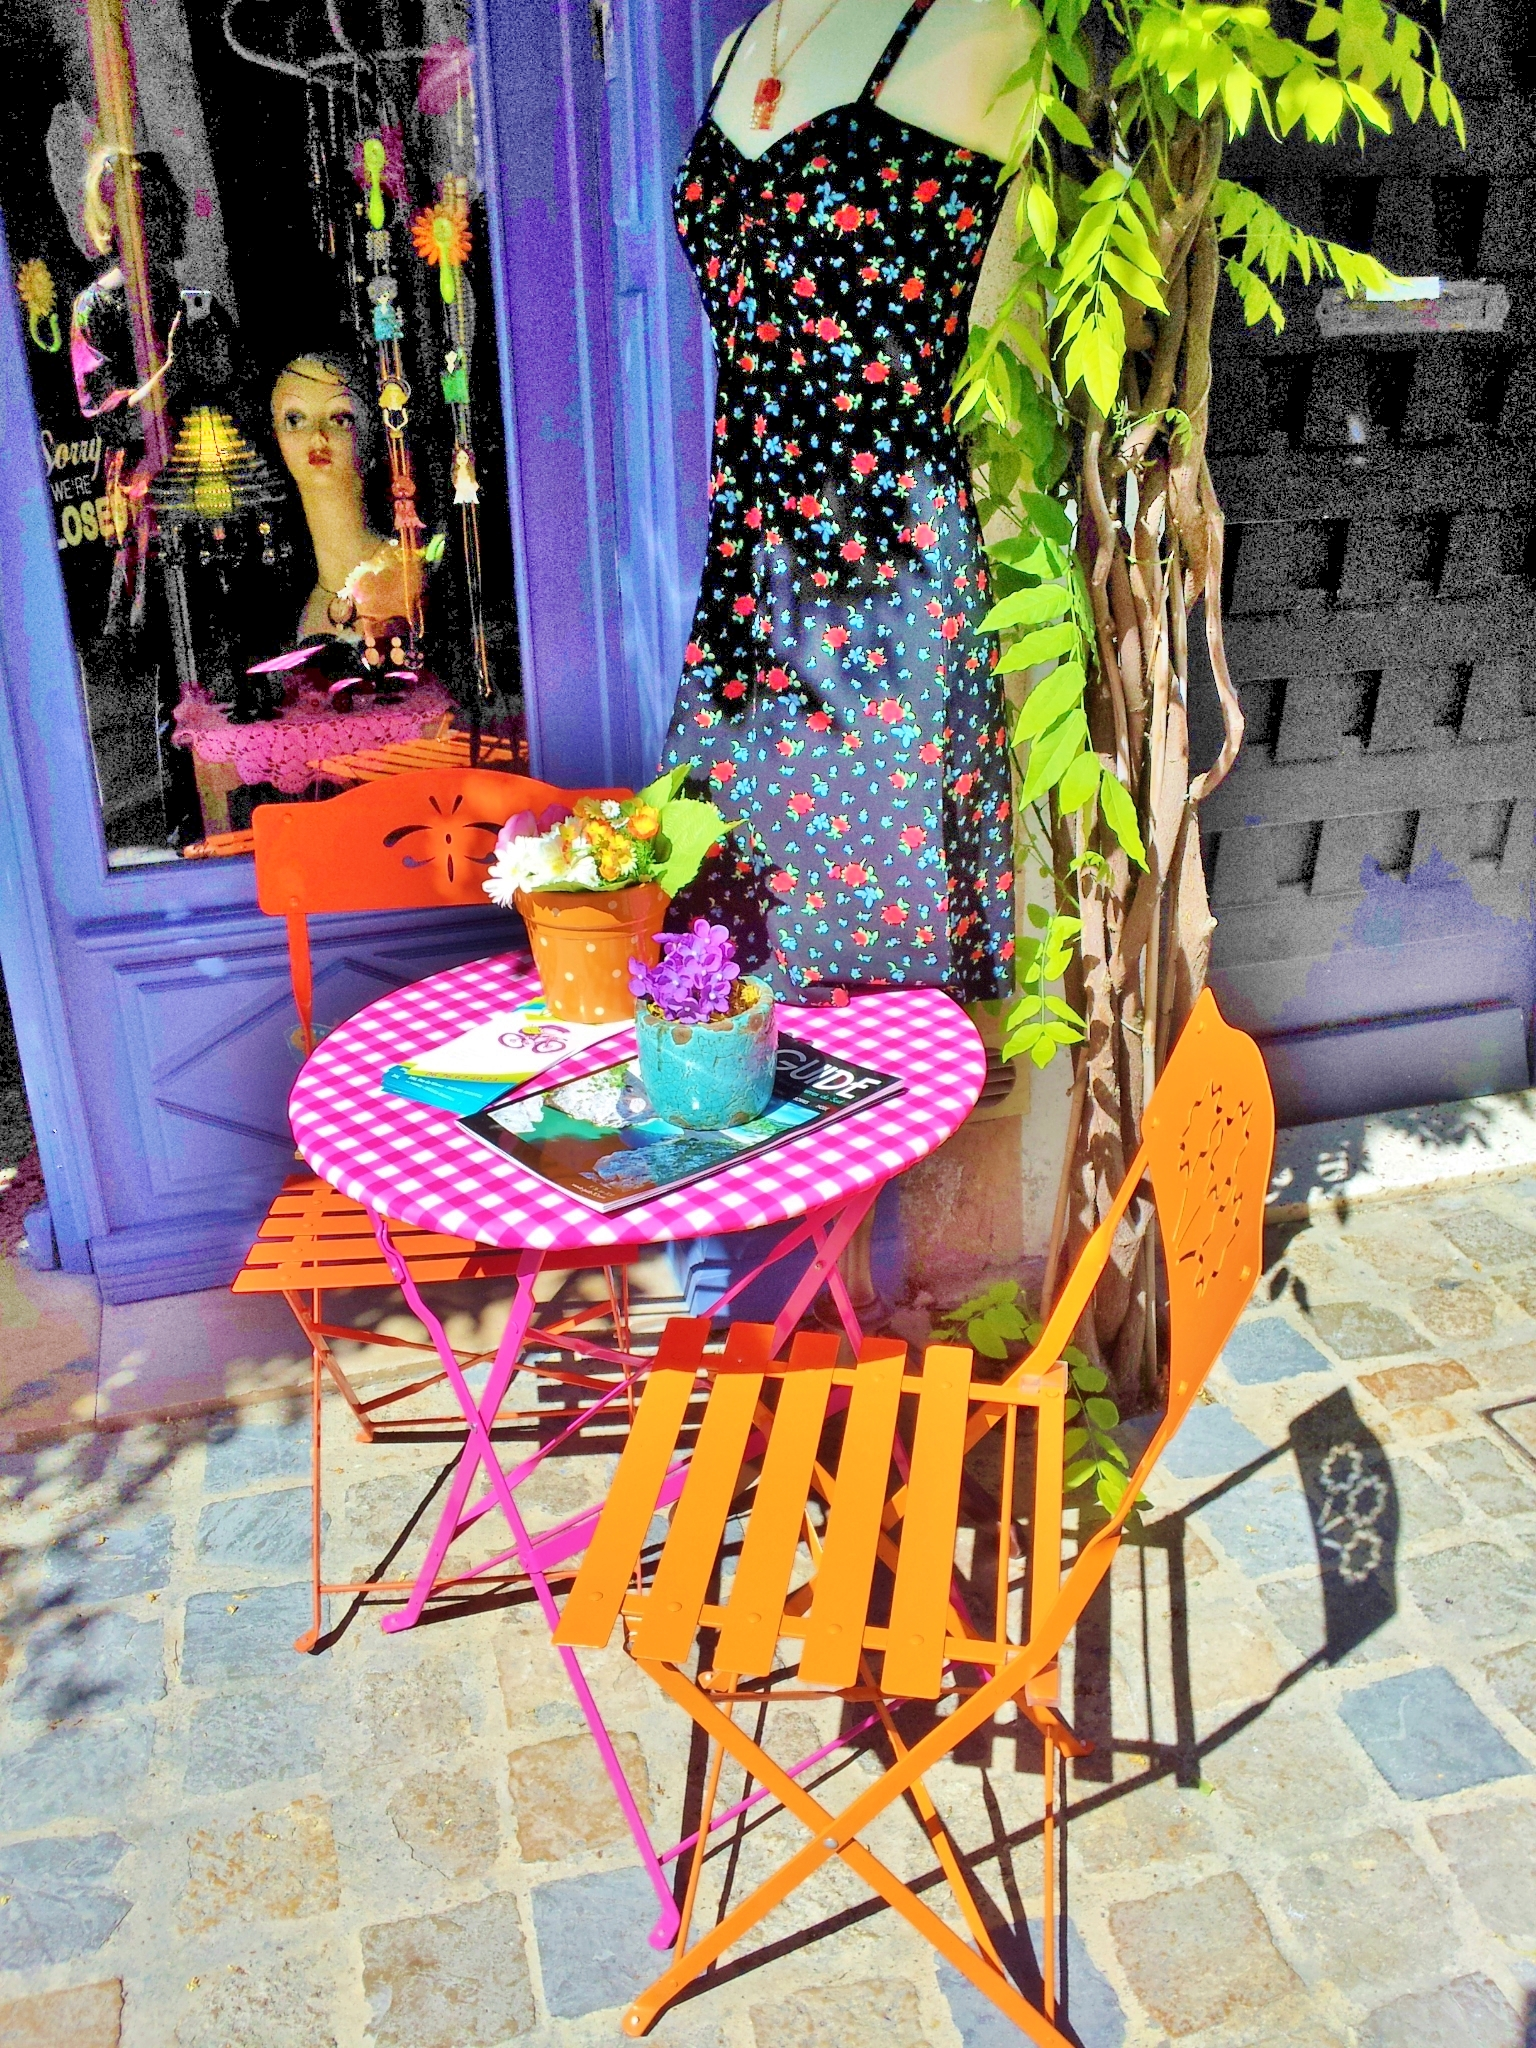 aigues-mortes-shop-with-table-and-chairs